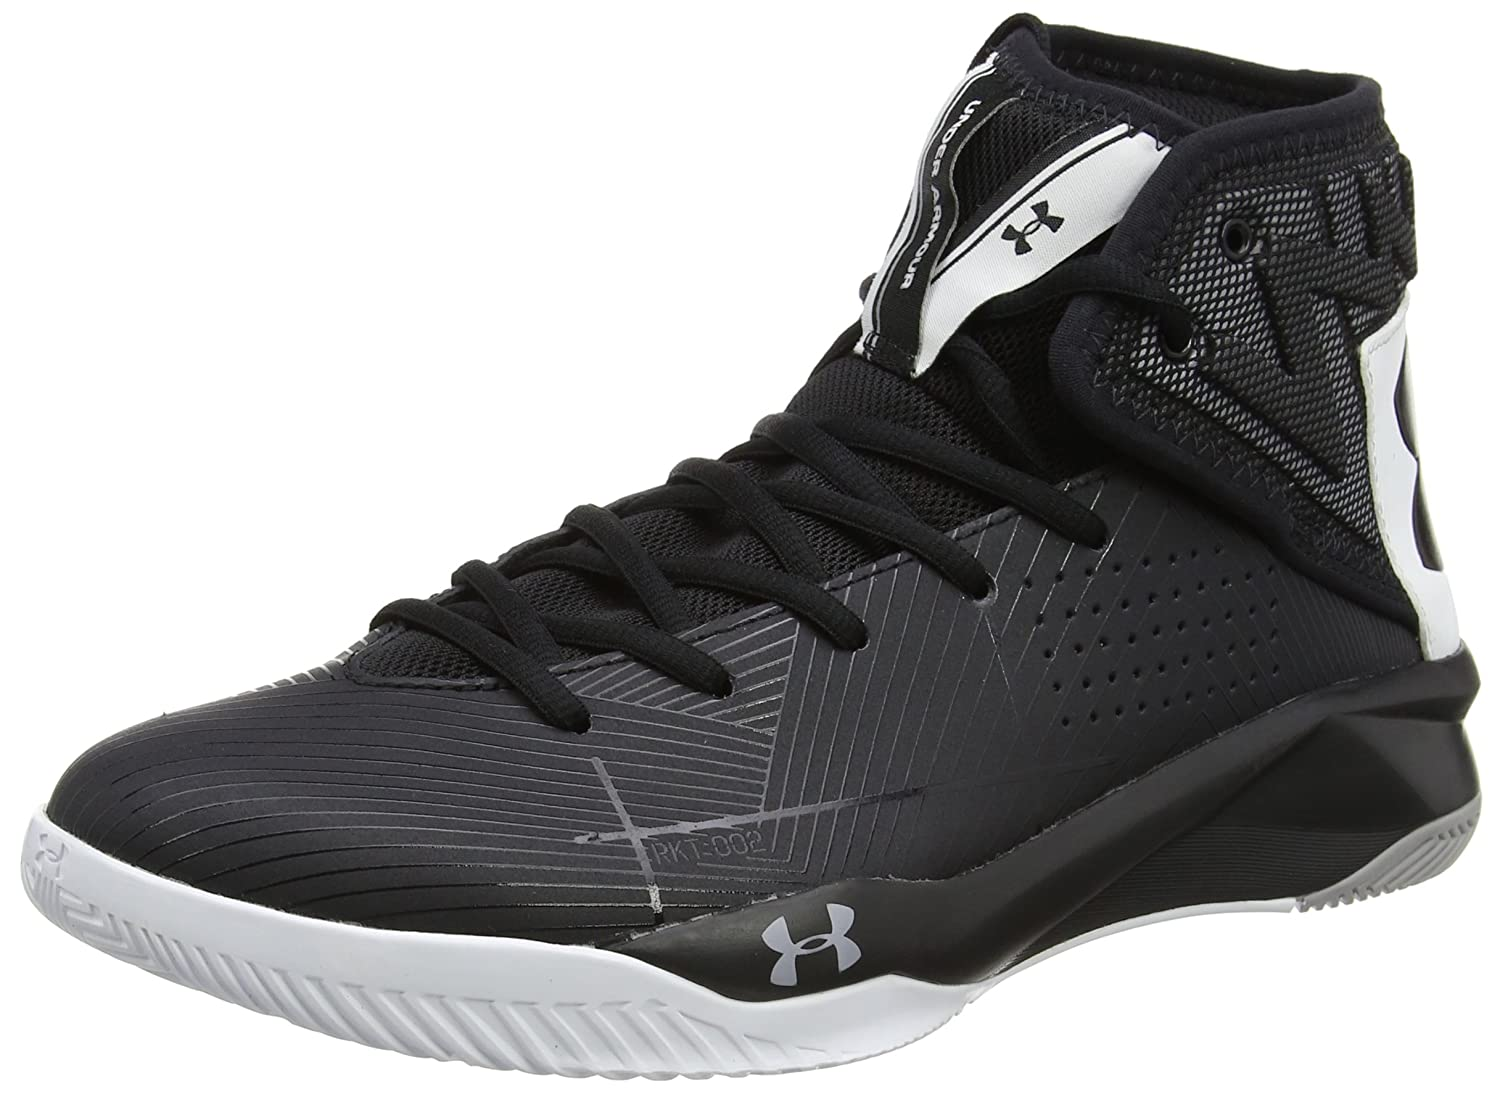 on sale d254b 2a138 Under Armour Men's Rocket 2 Cross-Trainer Shoe